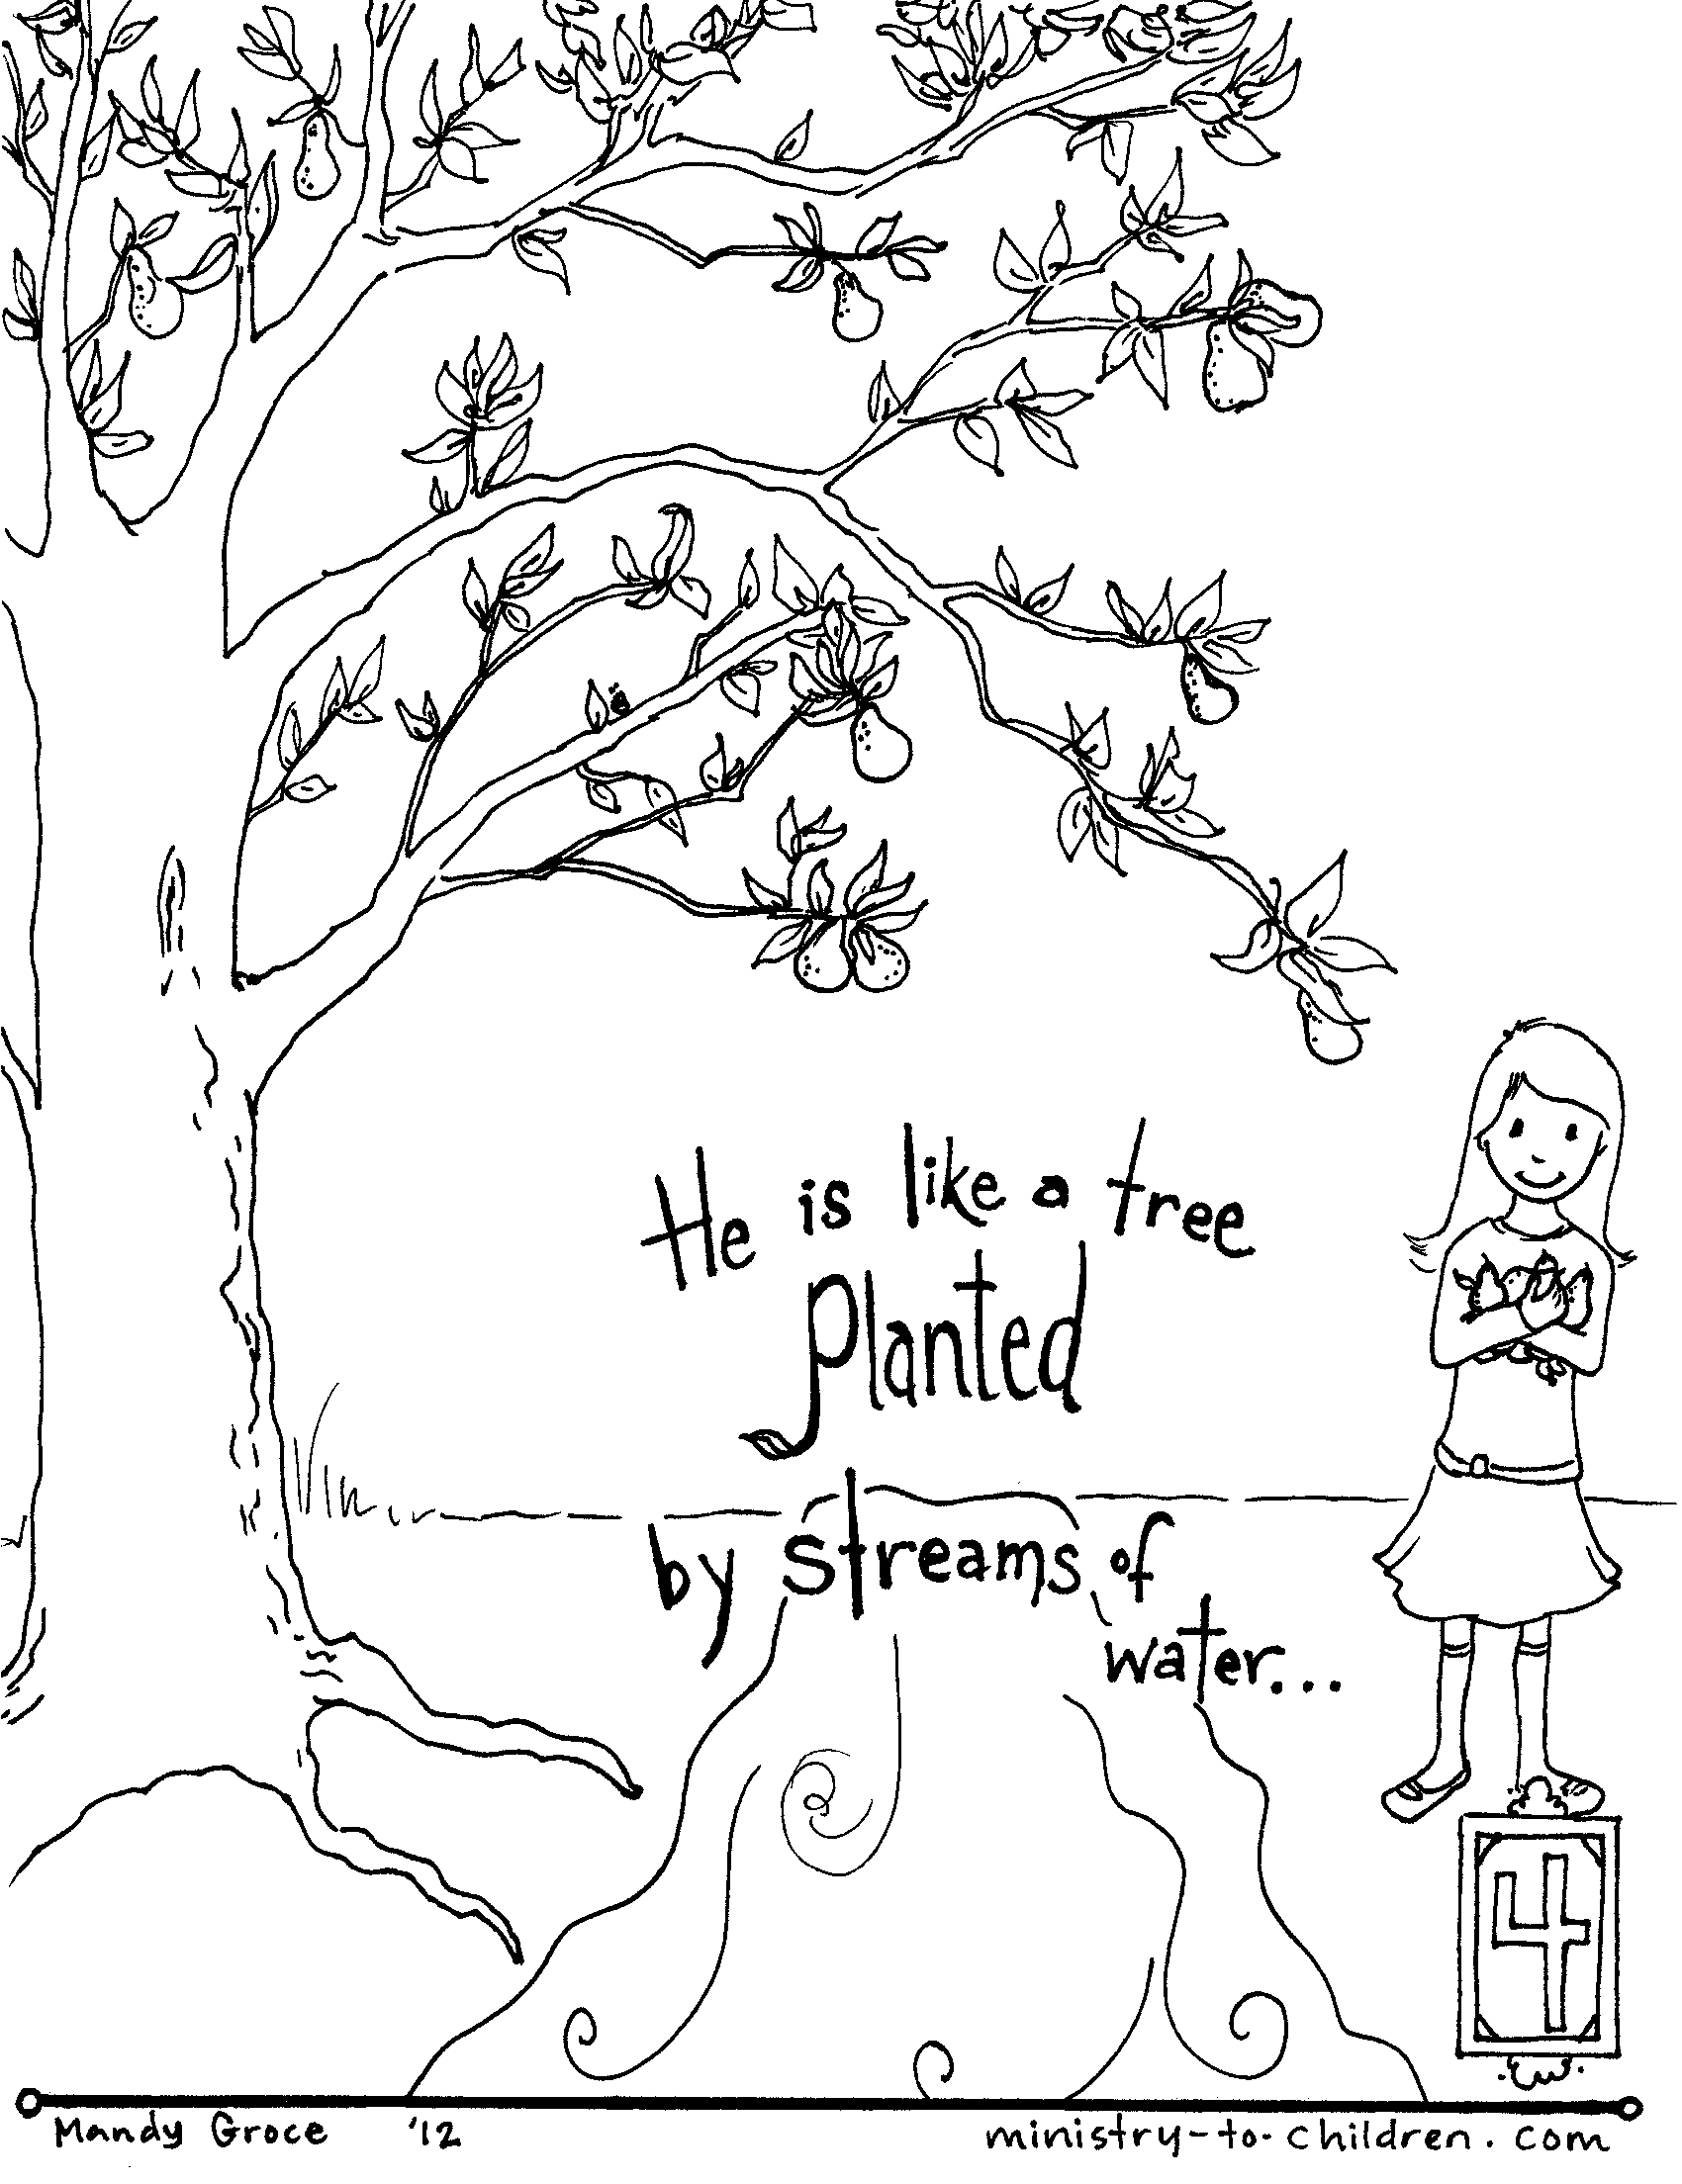 coloring psalm 1 coloring pages for kids by mr adron psalm 1181 coloring psalm coloring 1